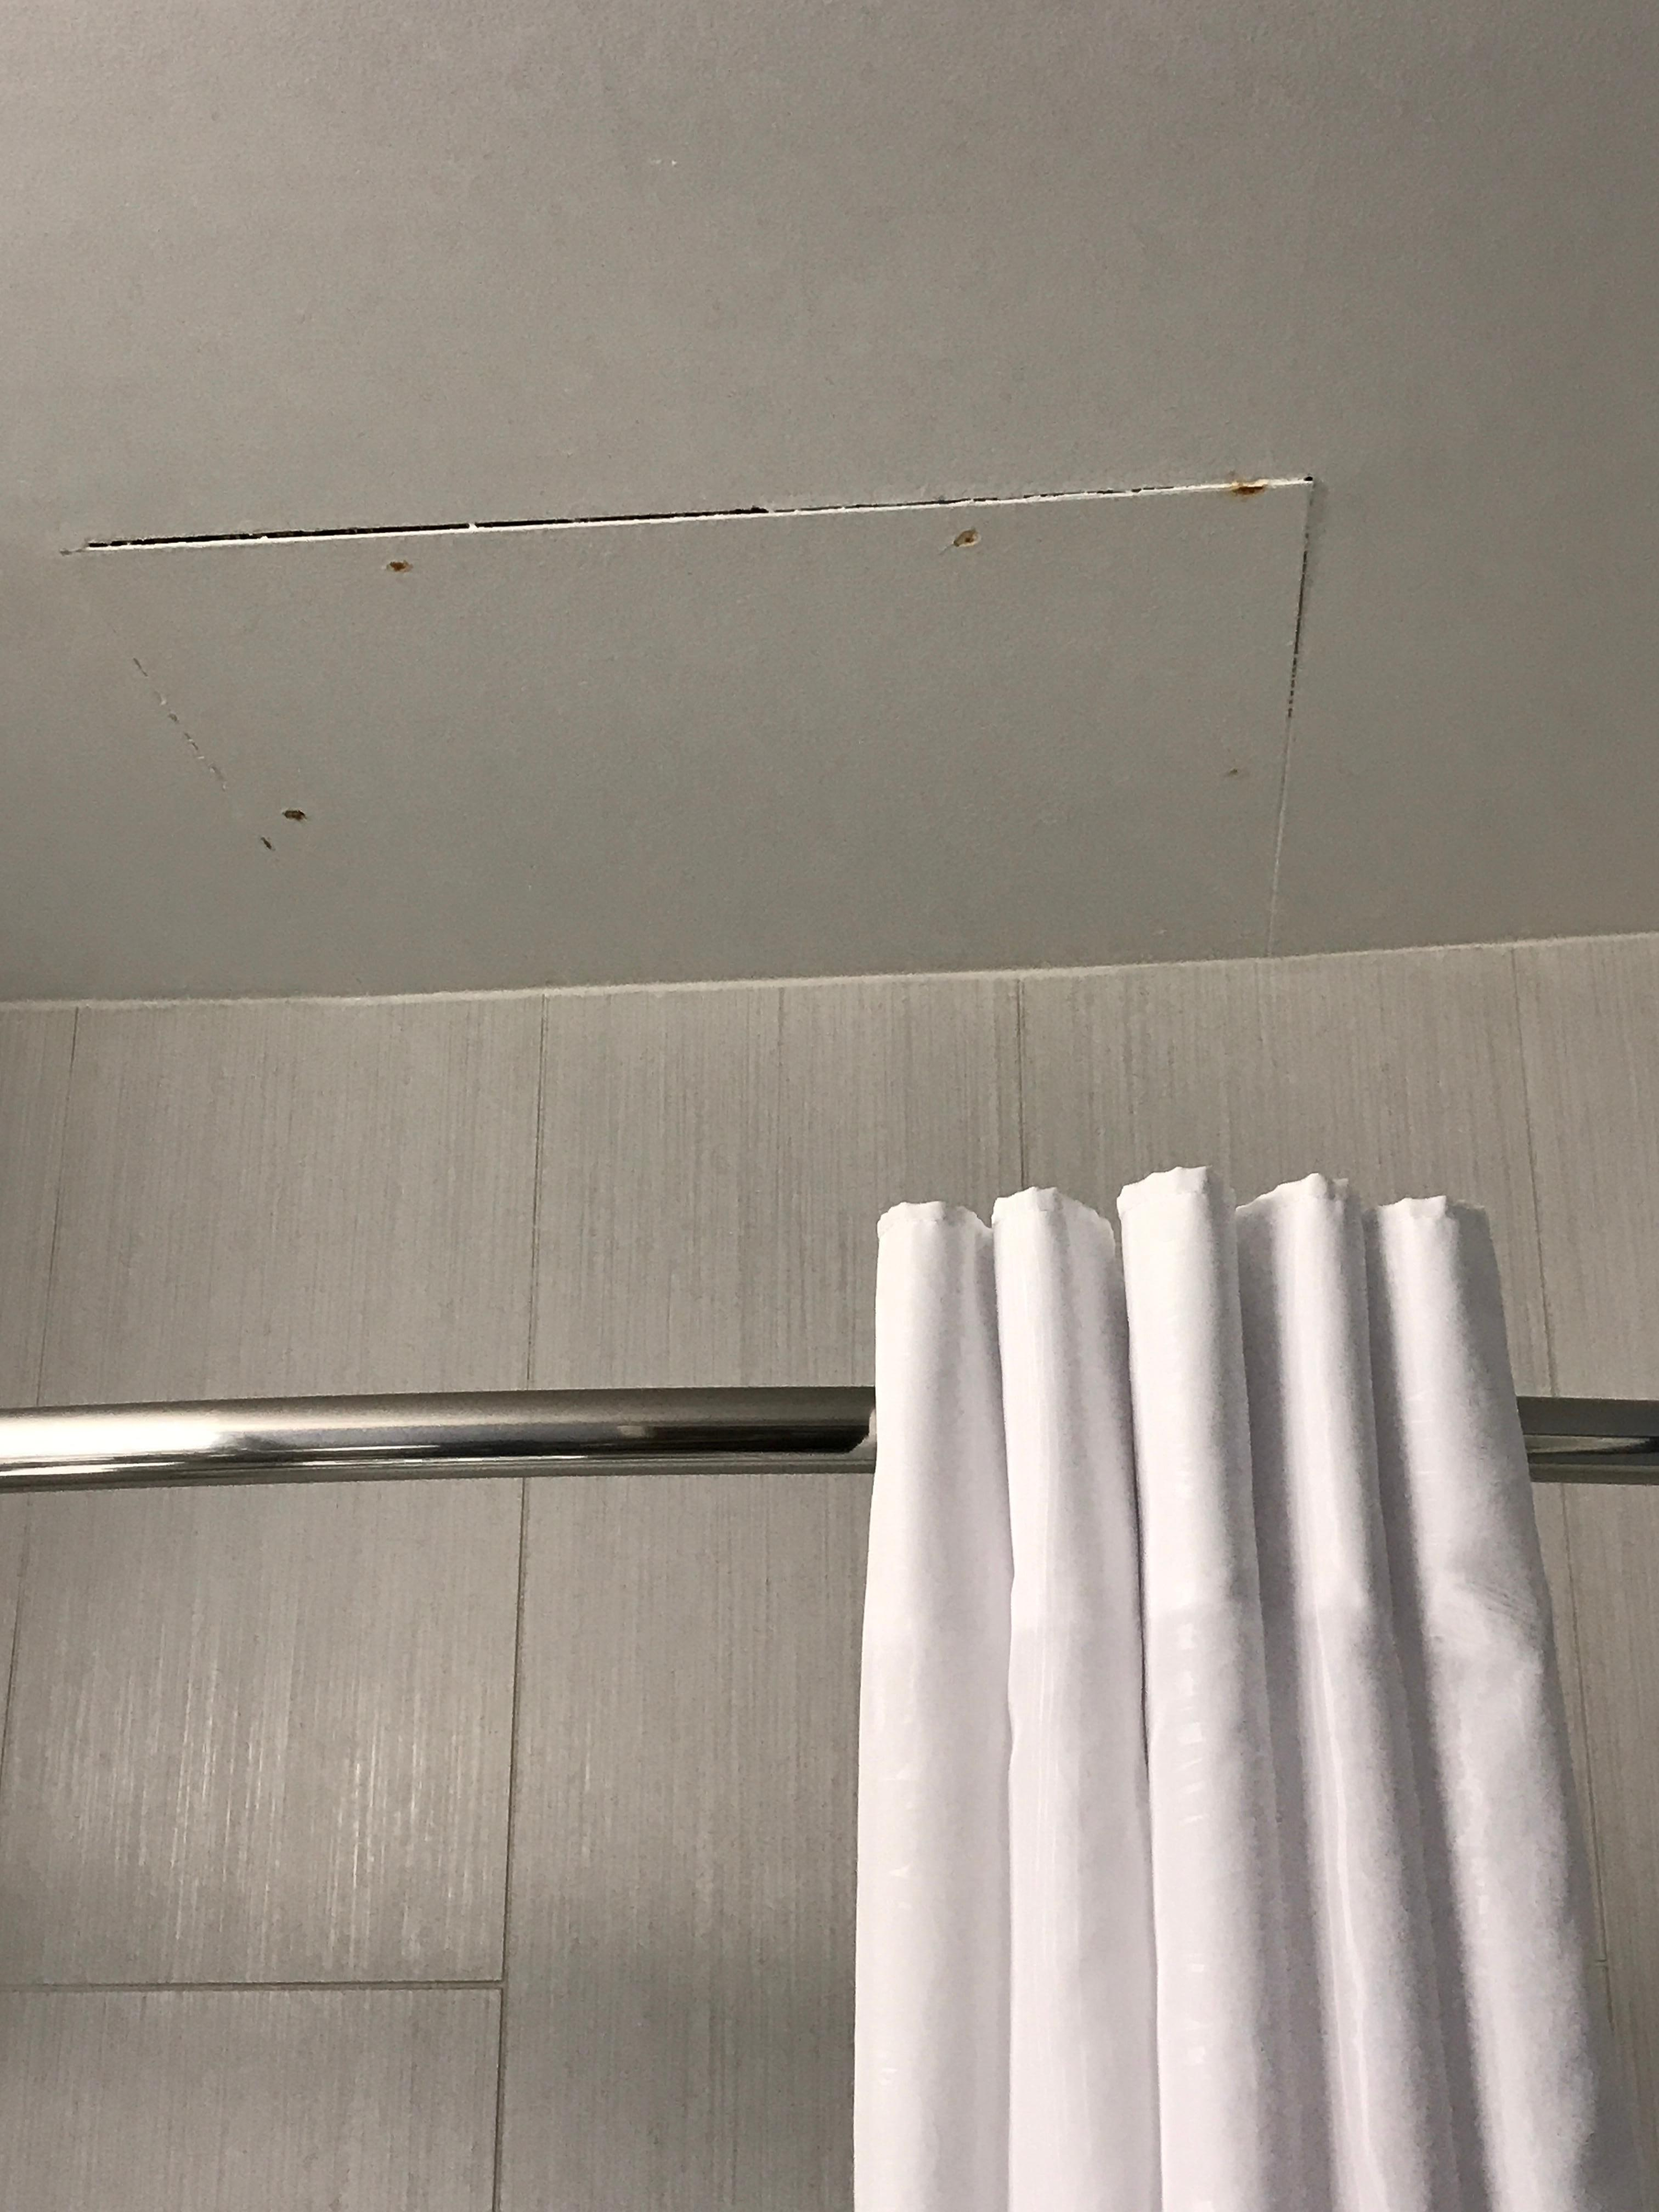 Shower rust or mold